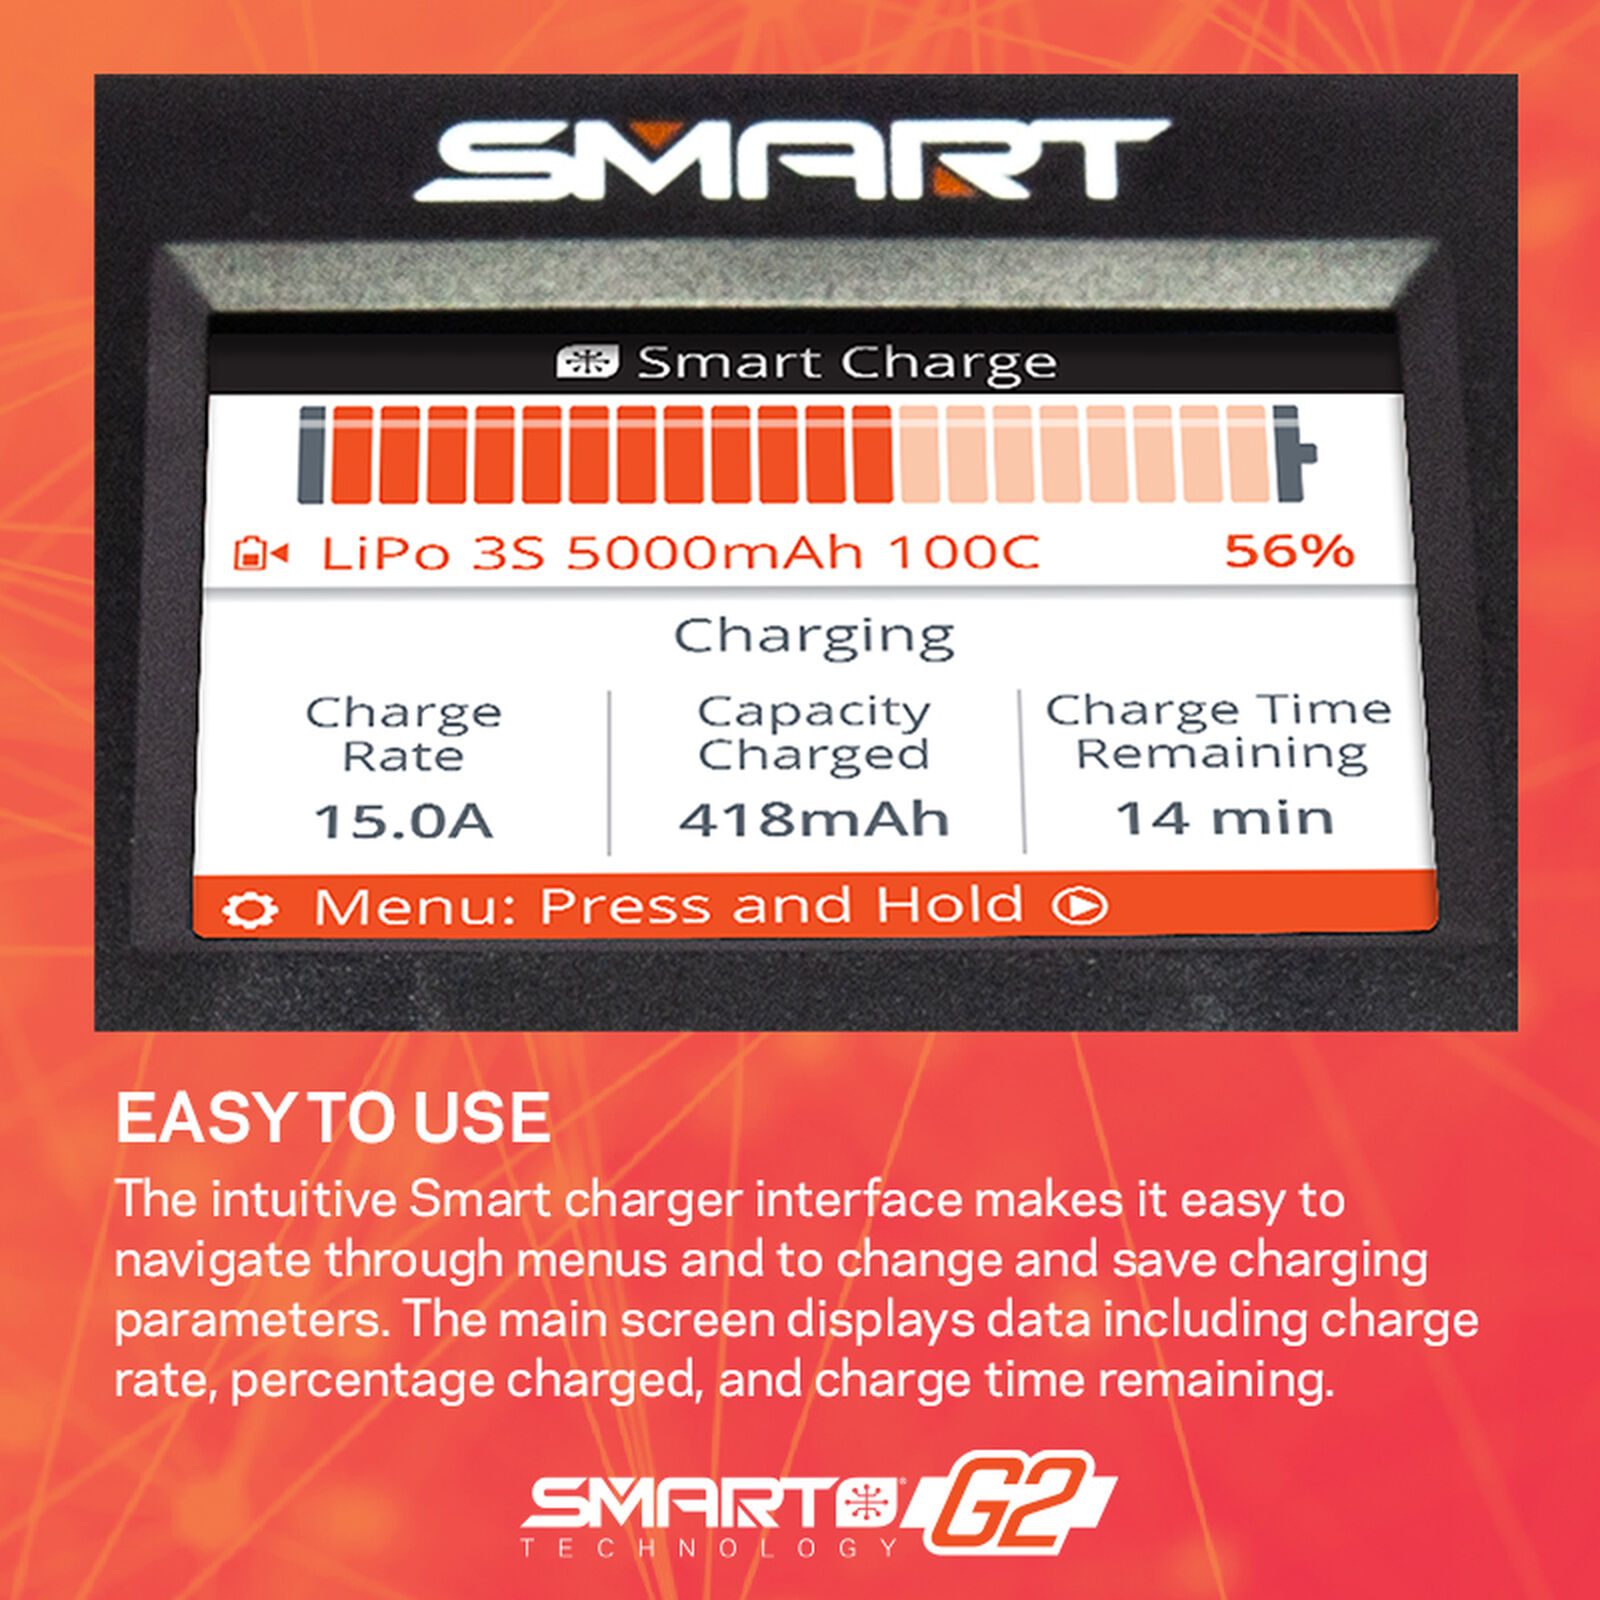 S2200 G2 AC 2x200W Smart Charger